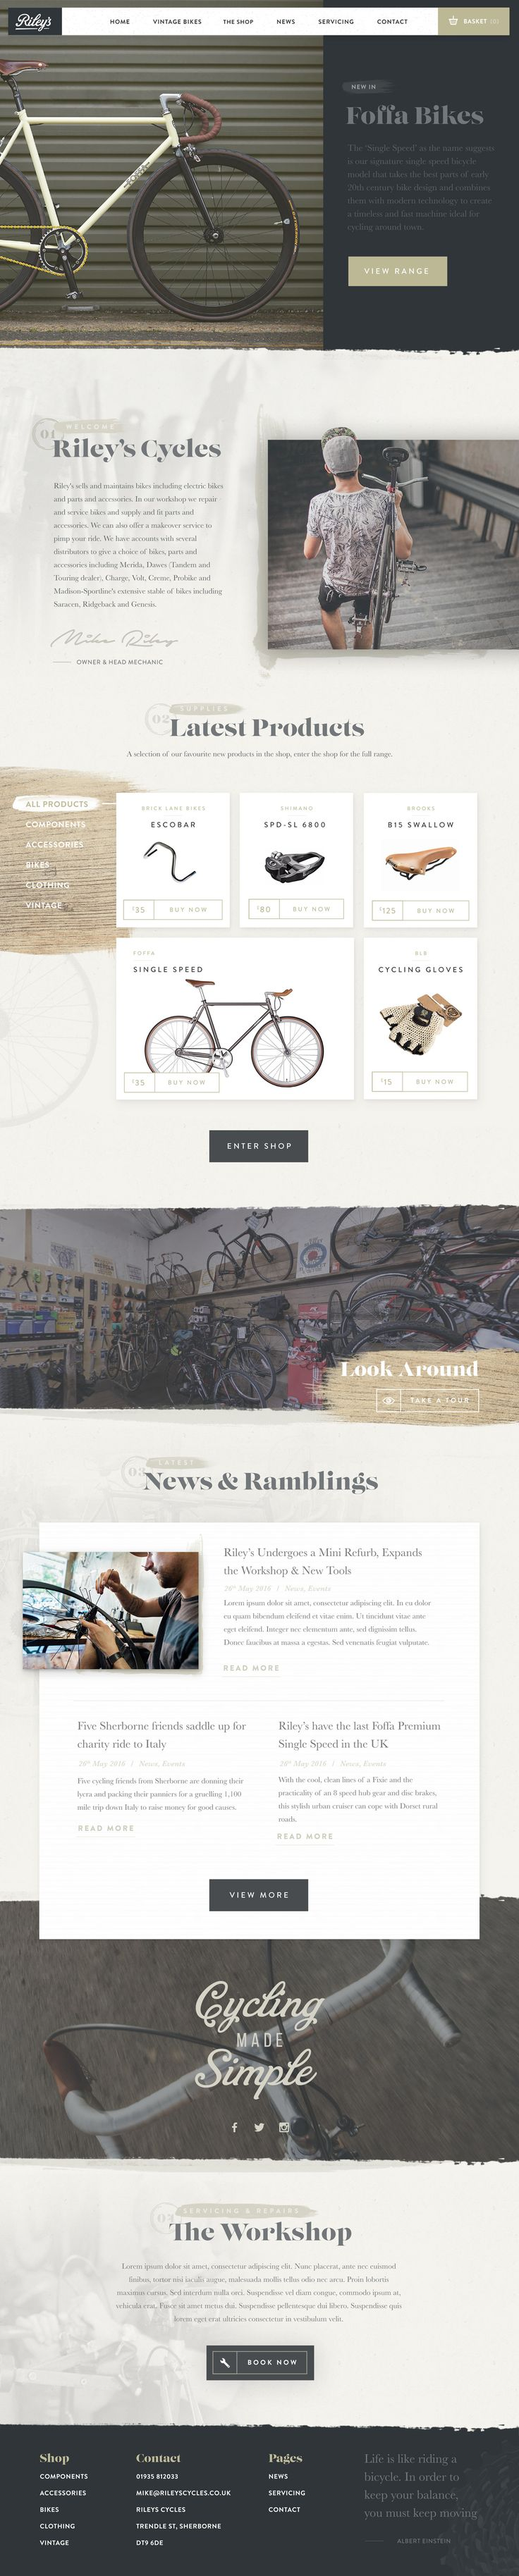 Riley'sn Cycles, concept website